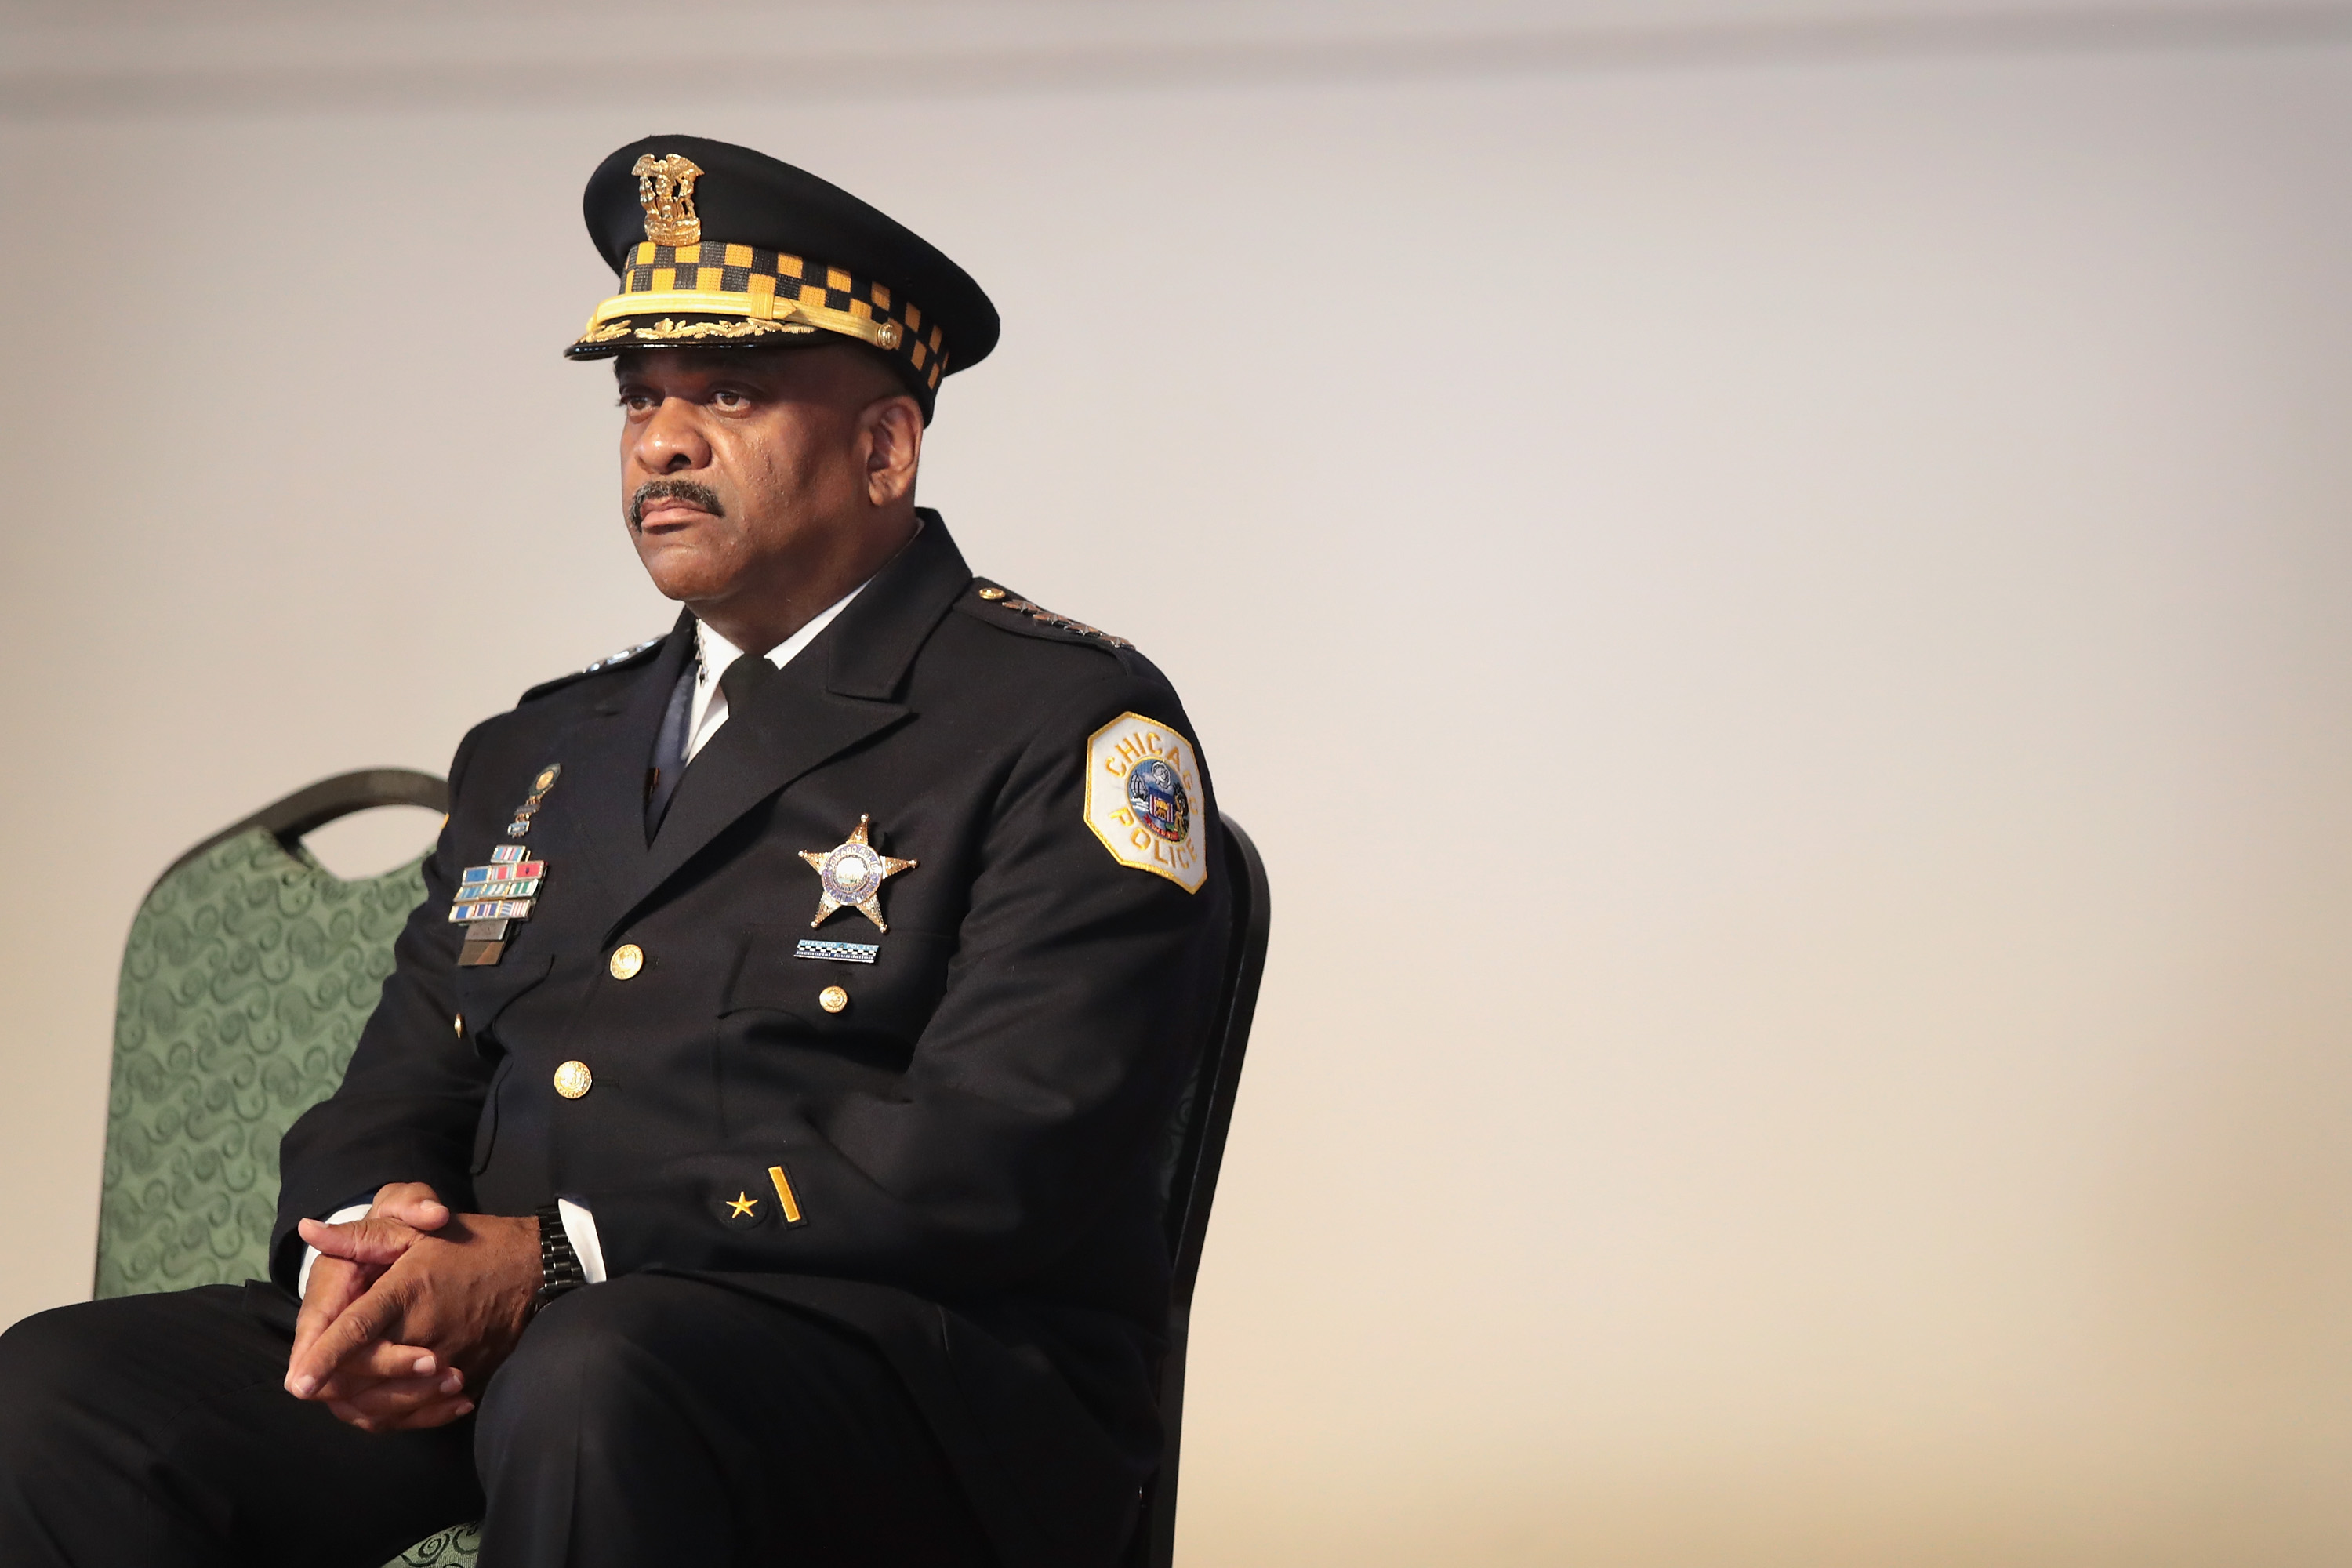 Chicago Police Superintendent Eddie Johnson attends a police academy graduation and promotion ceremony on June 15, 2017 in Chicago, Illinois.